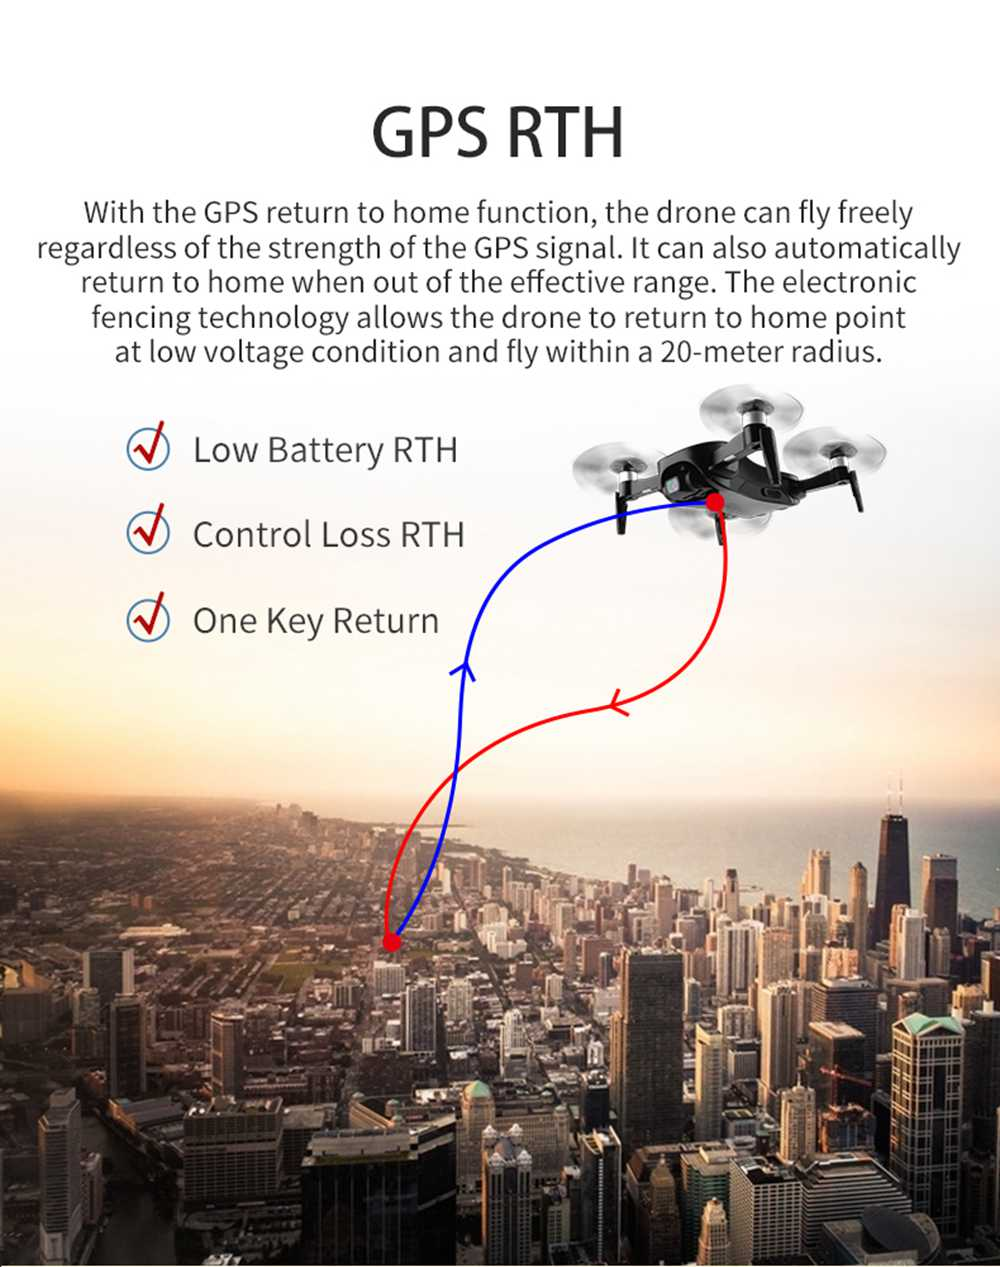 JJRC X12 AURORA 4K 5G WIFI 1.2km FPV GPS Foldable RC Drone With 3Axis Gimbal 50X Digital Zoom Ultrasonic Positioning RTF - White Two Batteries with Bag